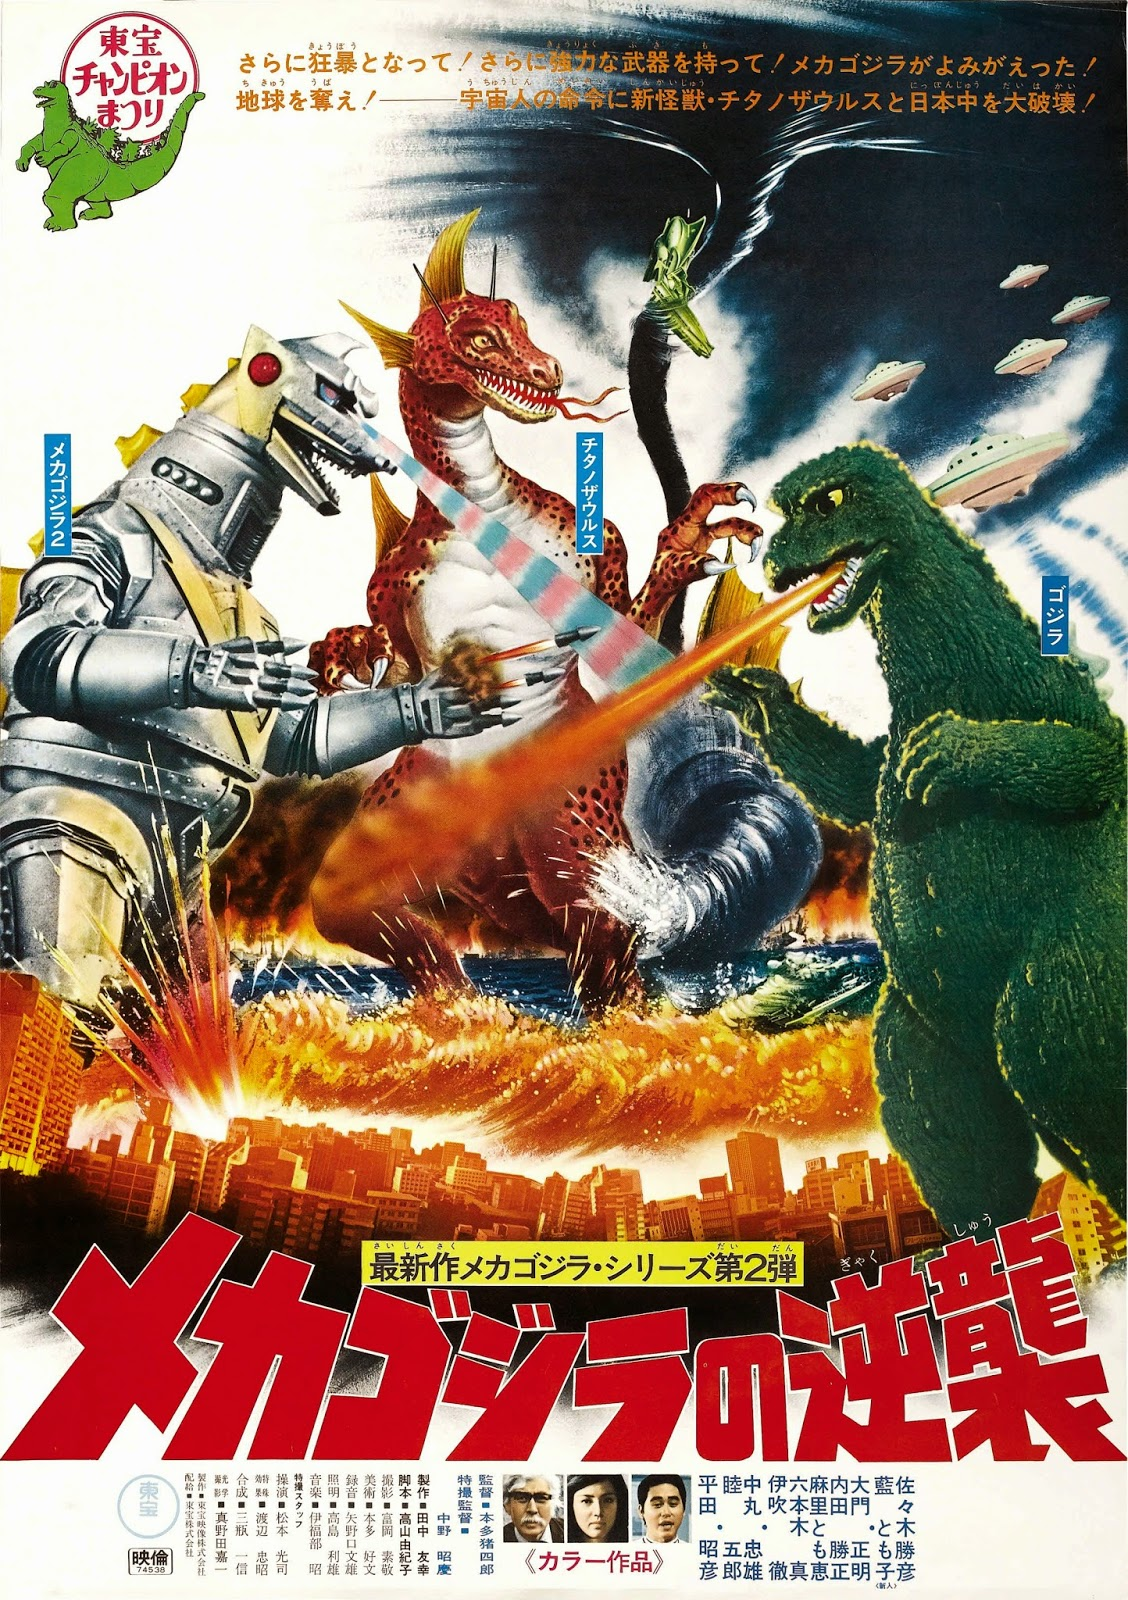 http://fr.wikipedia.org/wiki/Mechagodzilla_contre-attaque